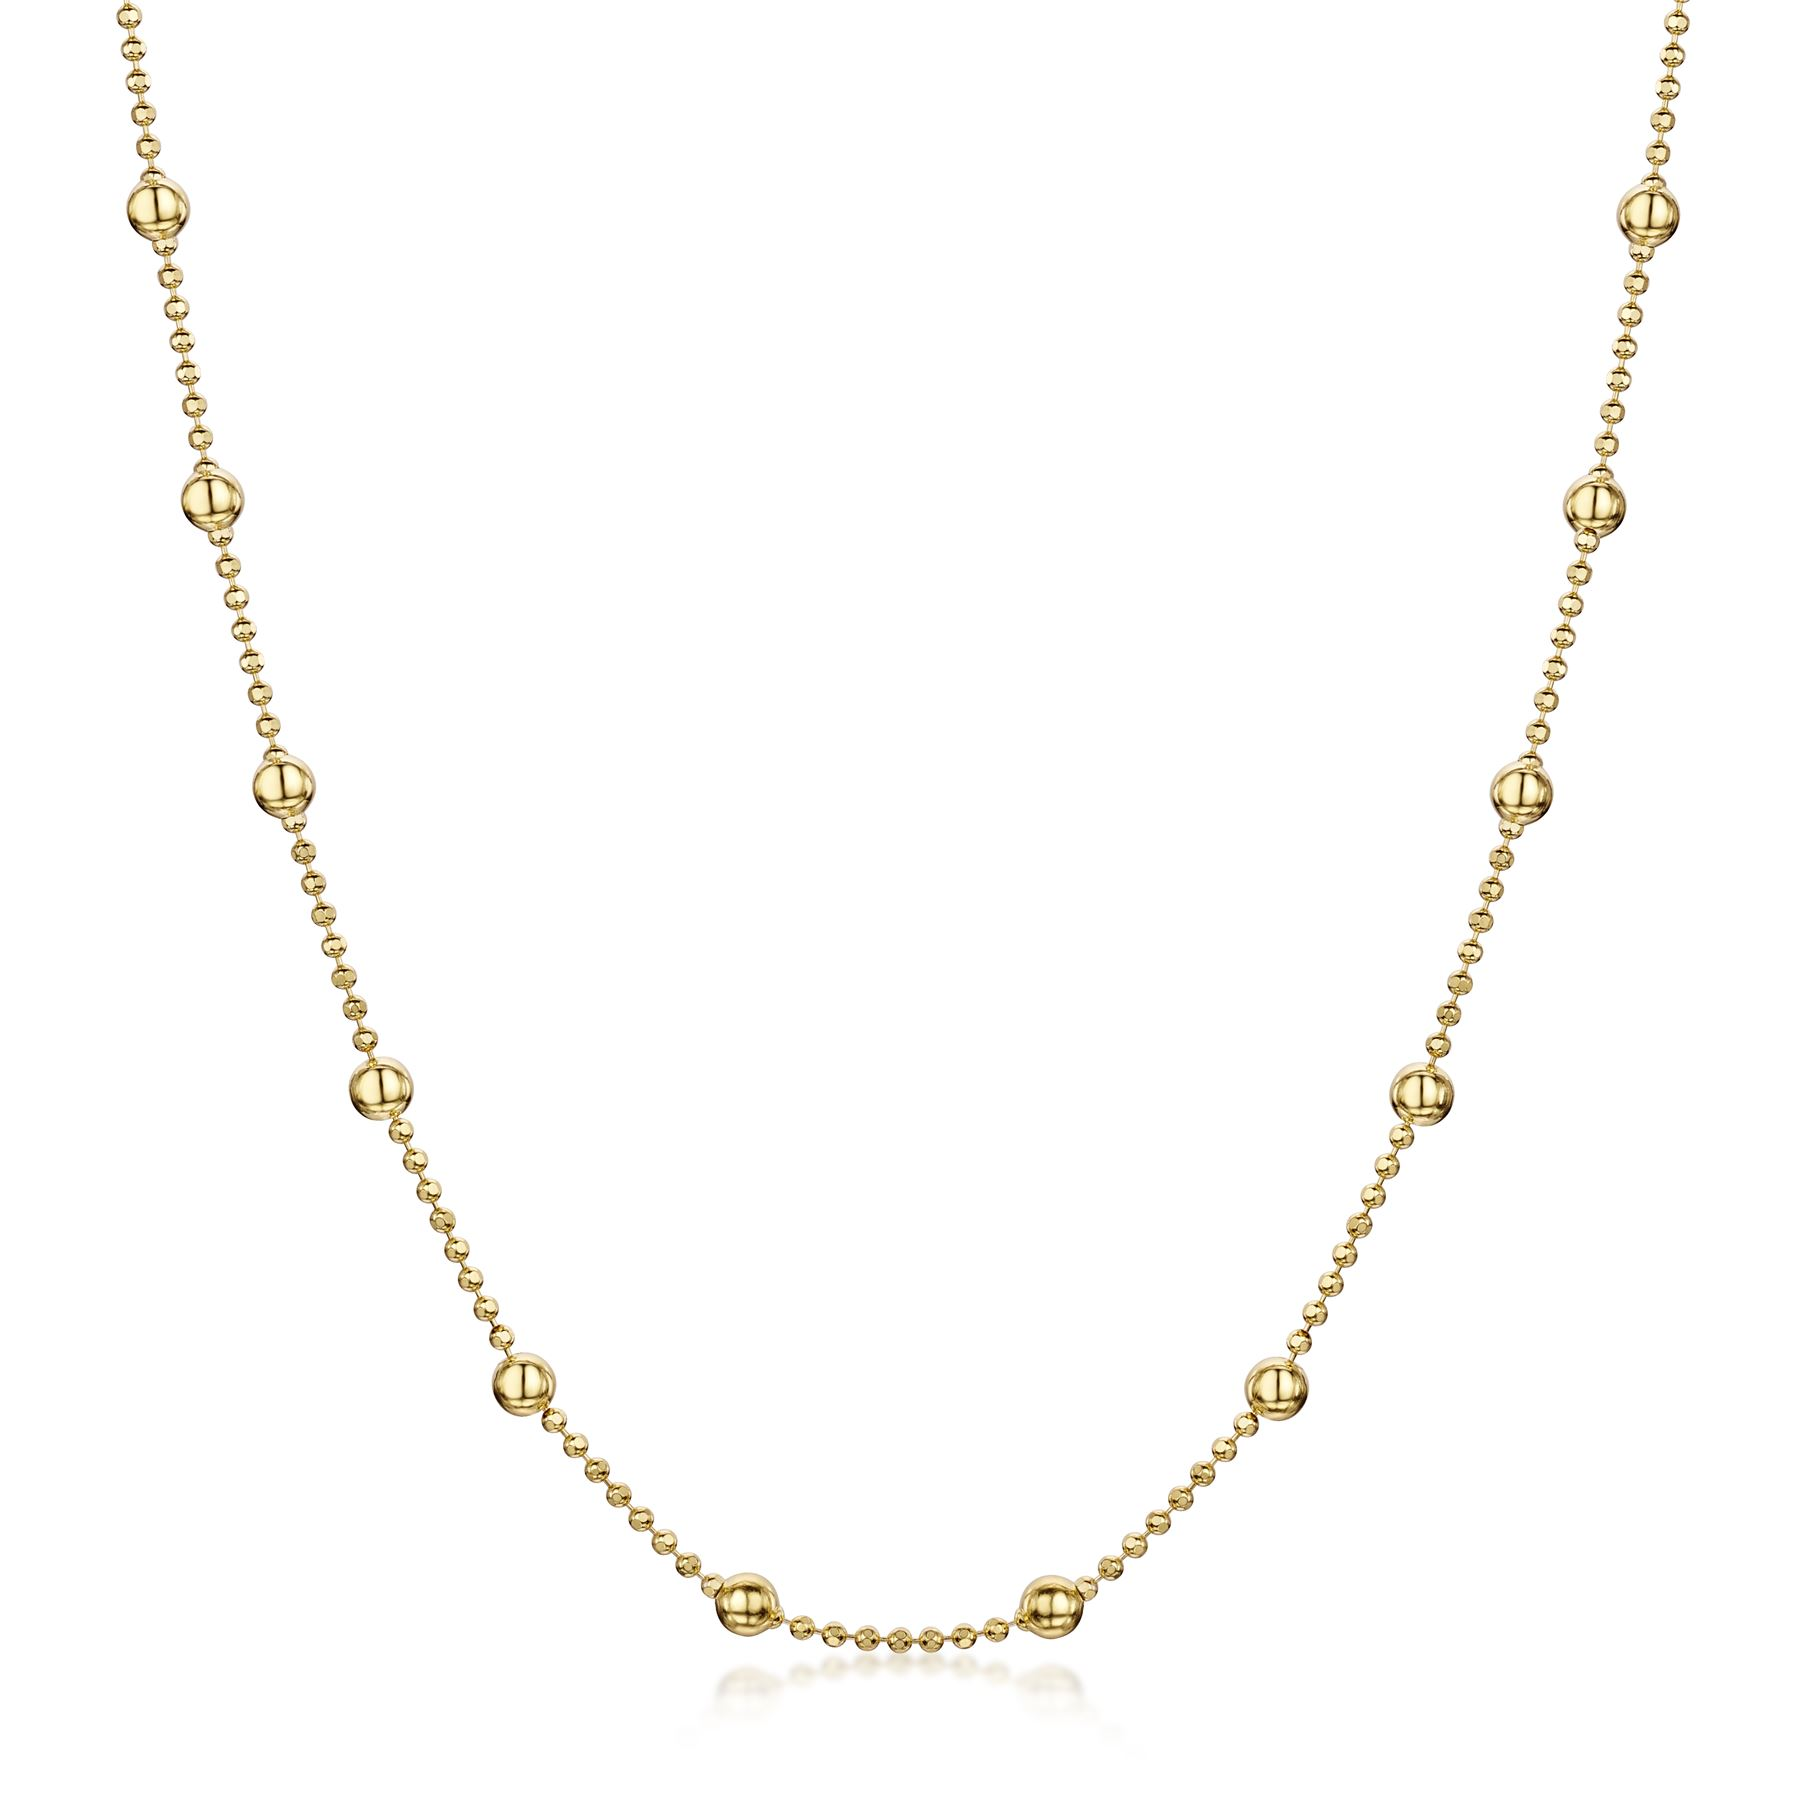 Amberta-Genuine-Gold-Plated-on-Real-925-Sterling-Silver-Necklace-Chain-Italy miniatura 48